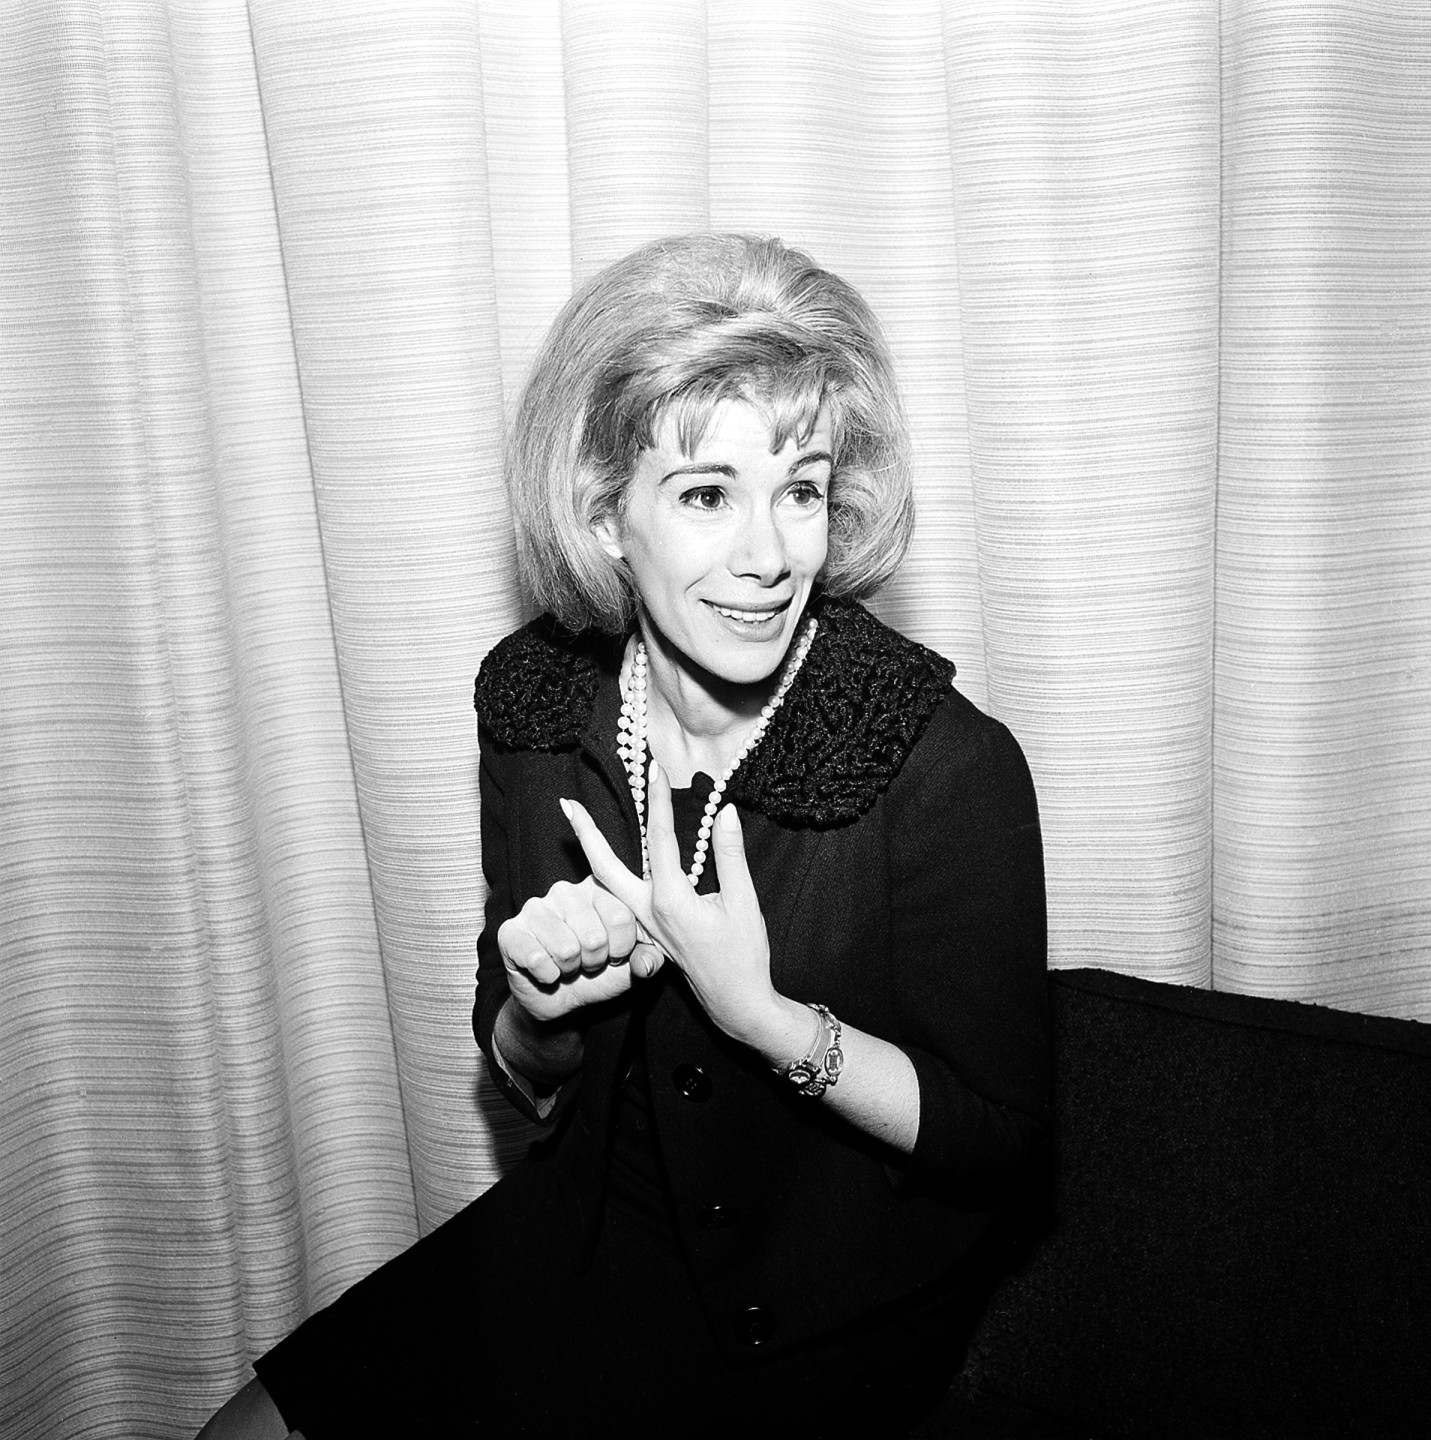 Joan Rivers in 1965. She began appearing on television variety programs like <em>The Ed Sullivan Show</em>.